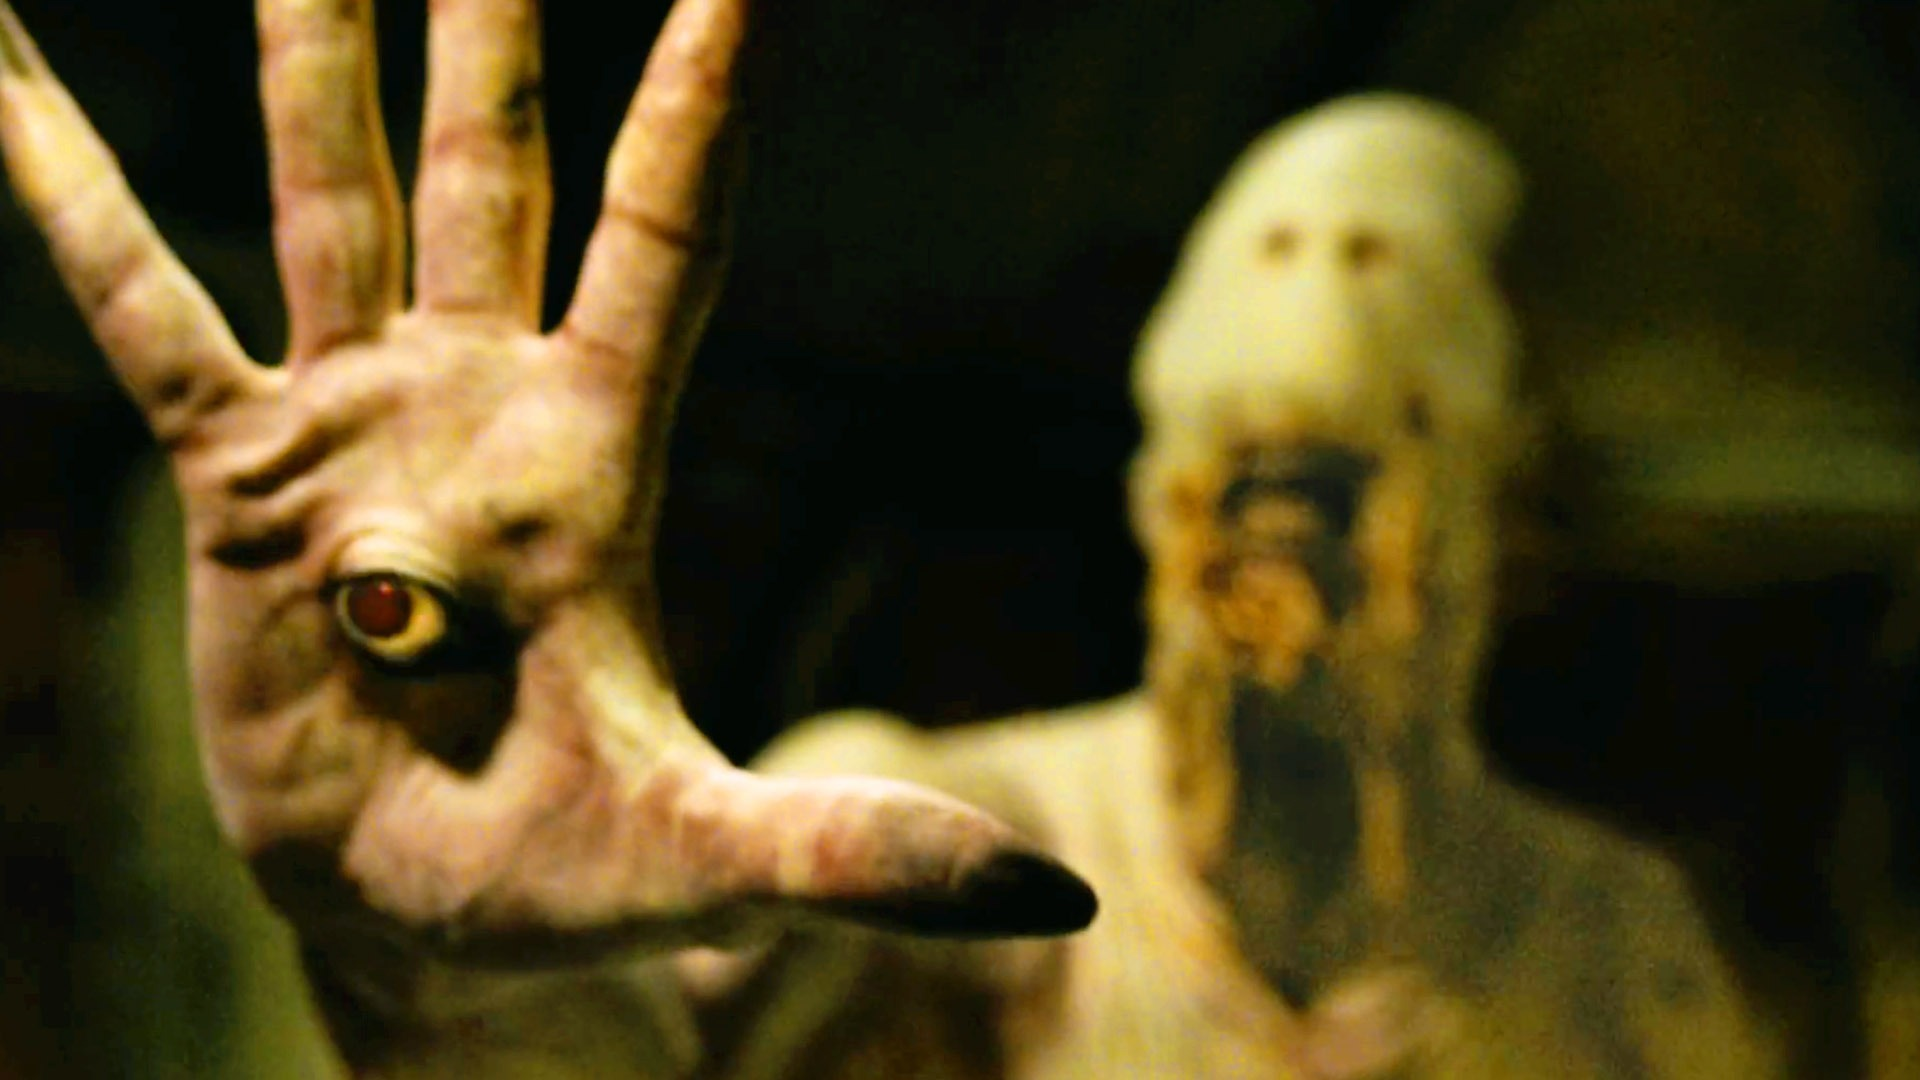 Pan S Labyrinth Pans Labyrinth Trailer 1 Fandango